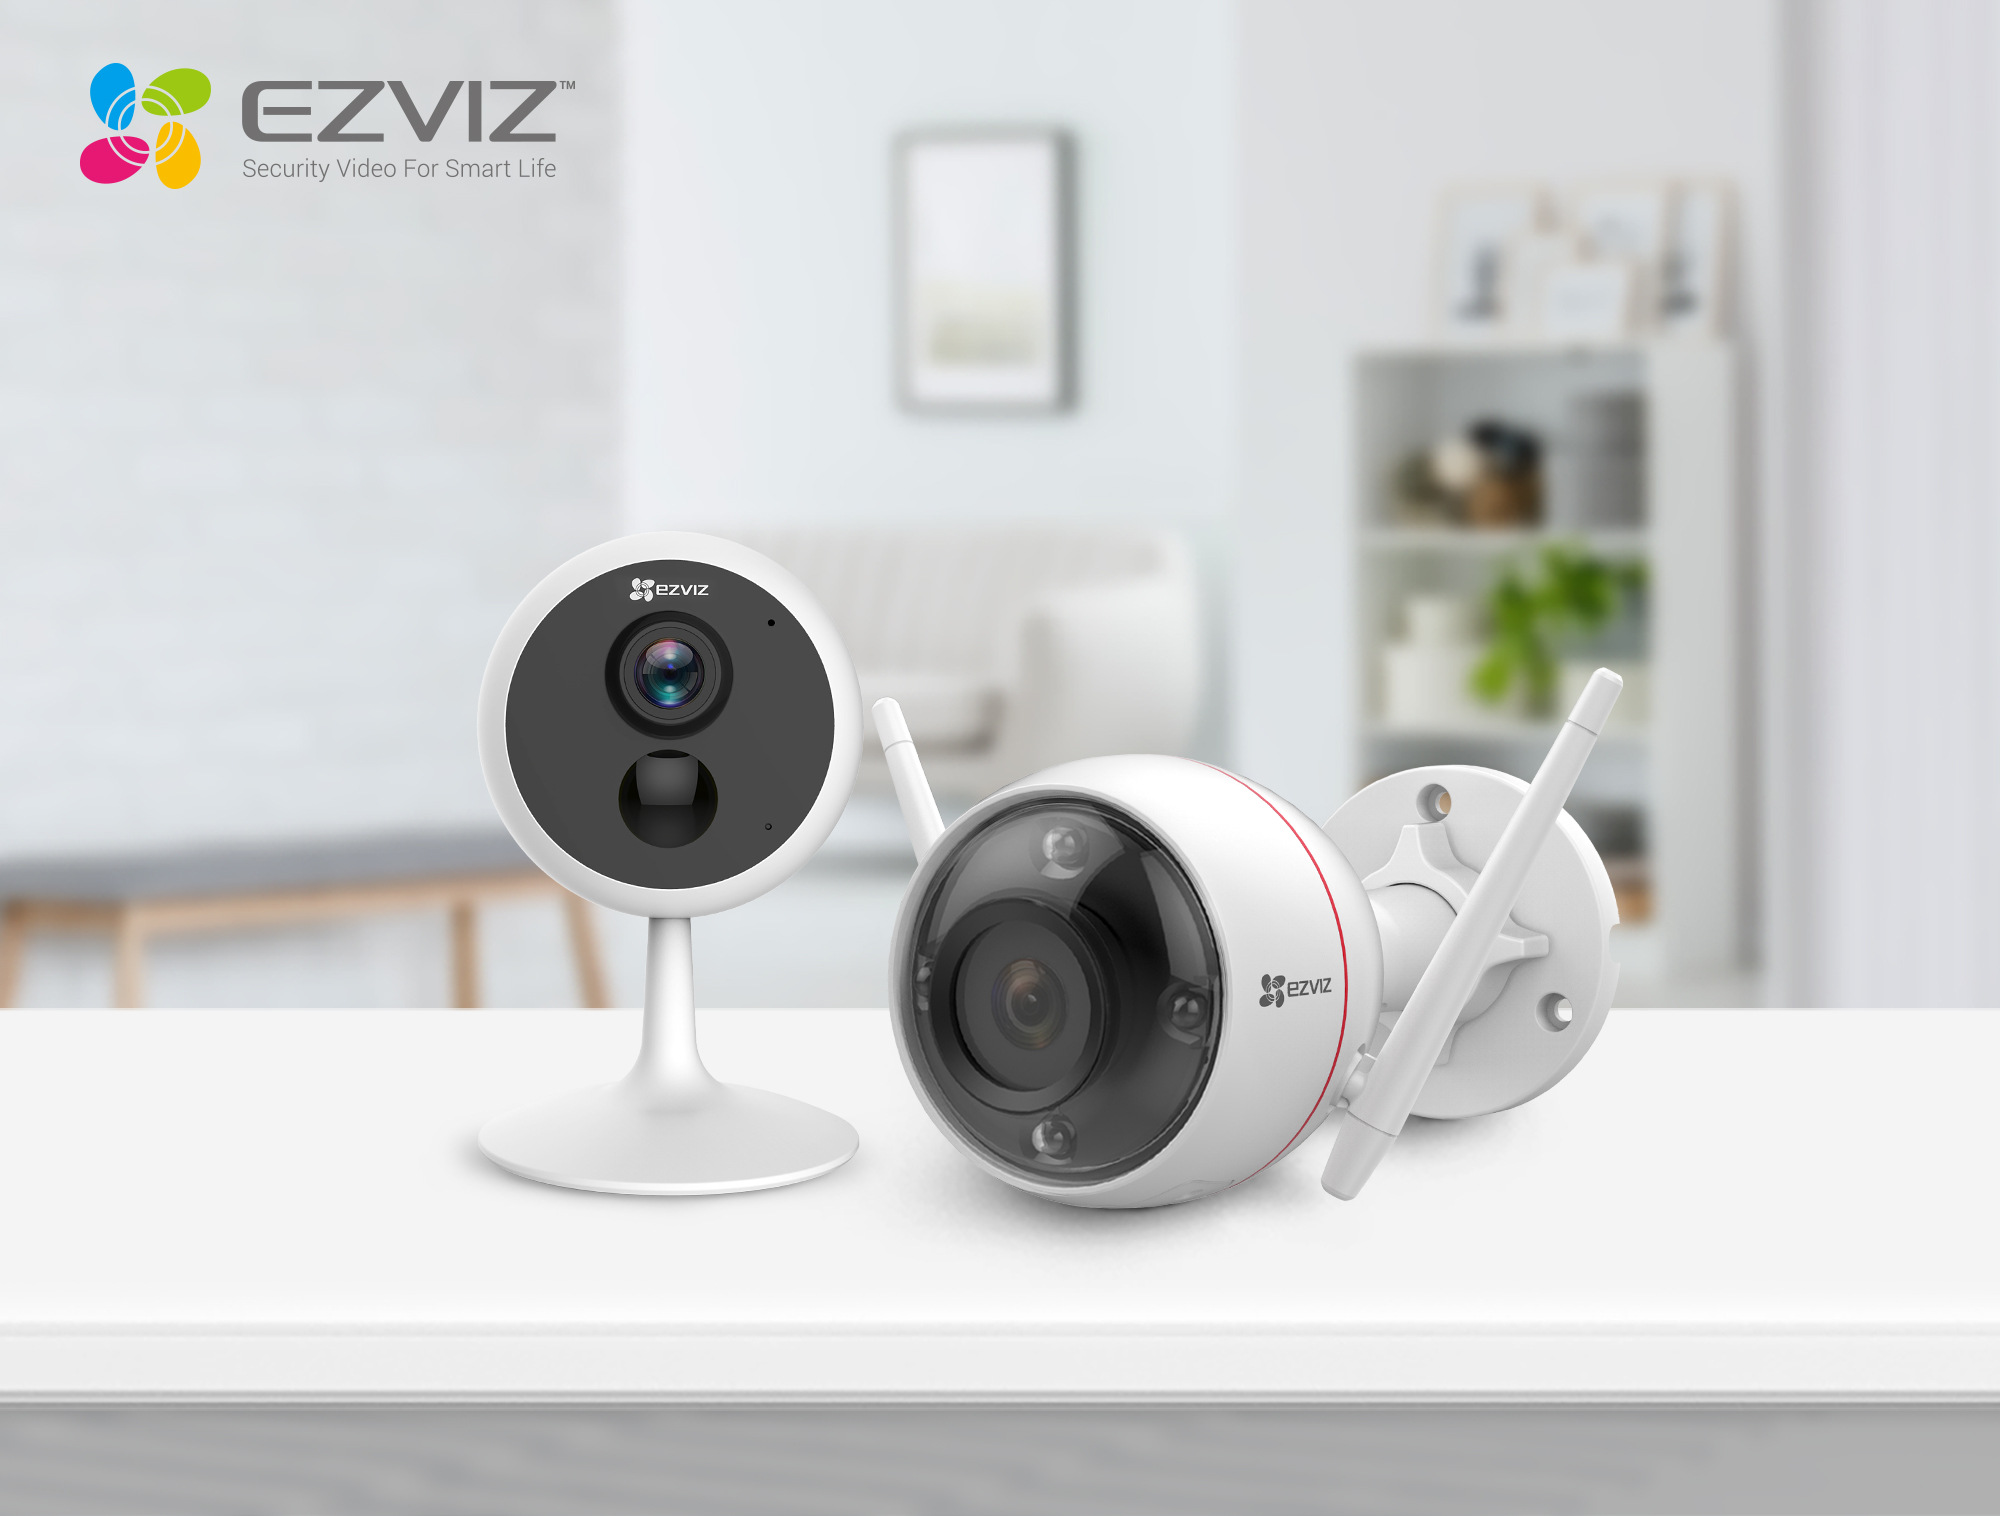 EZVIZ Showcases its First Color Night Vision Security Camera at IFA 2019  to Bring 24*7 Color Images